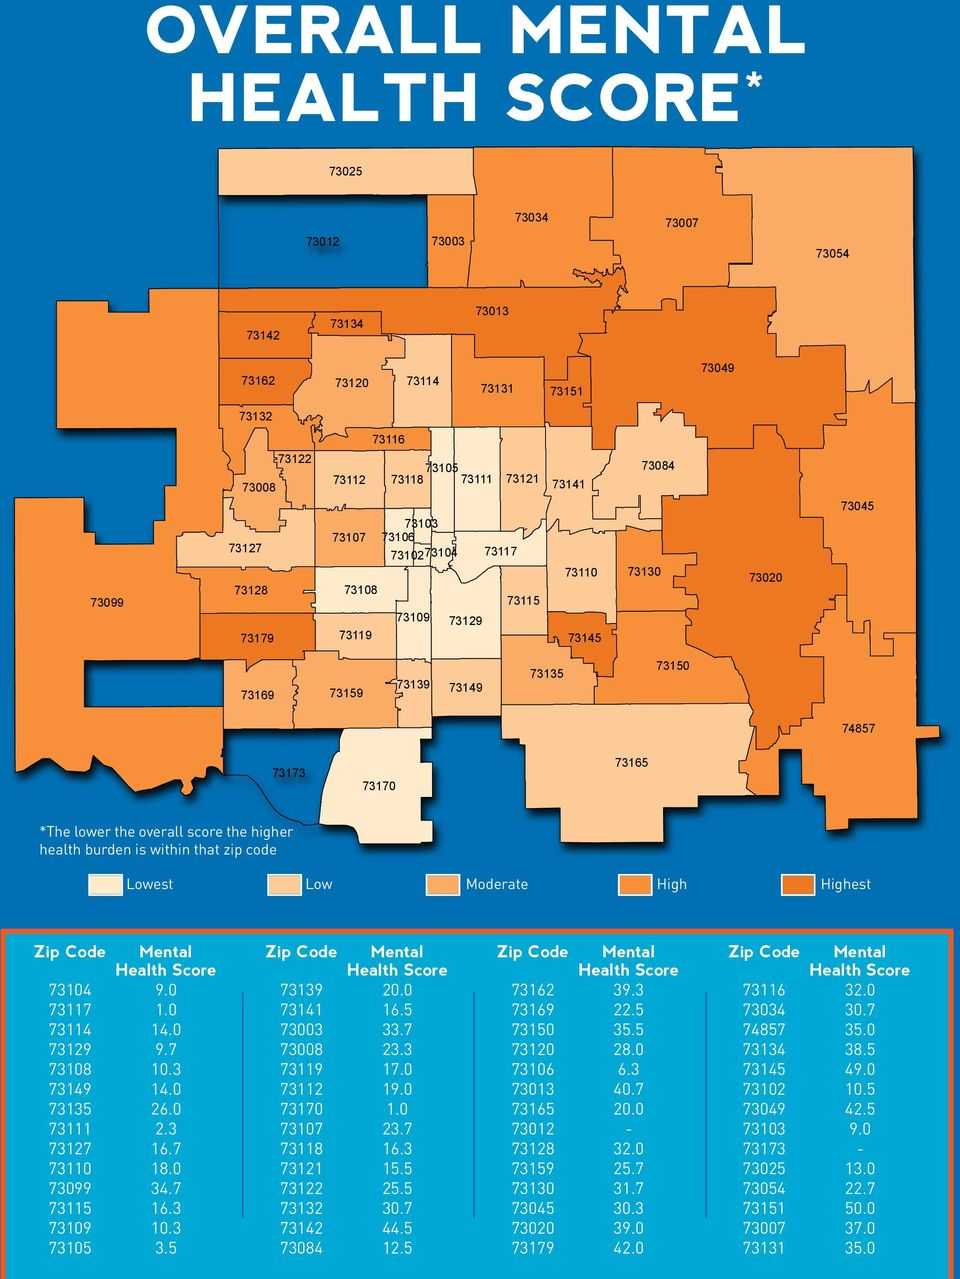 higher health burden is within that zip code Lowest Low Moderate High Highest Zip Code Mental Health Score 73104 9.0 73117 1.0 73114 14.0 73129 9.7 73108 10.3 73149 14.0 73135 26.0 73111 2.3 73127 16.